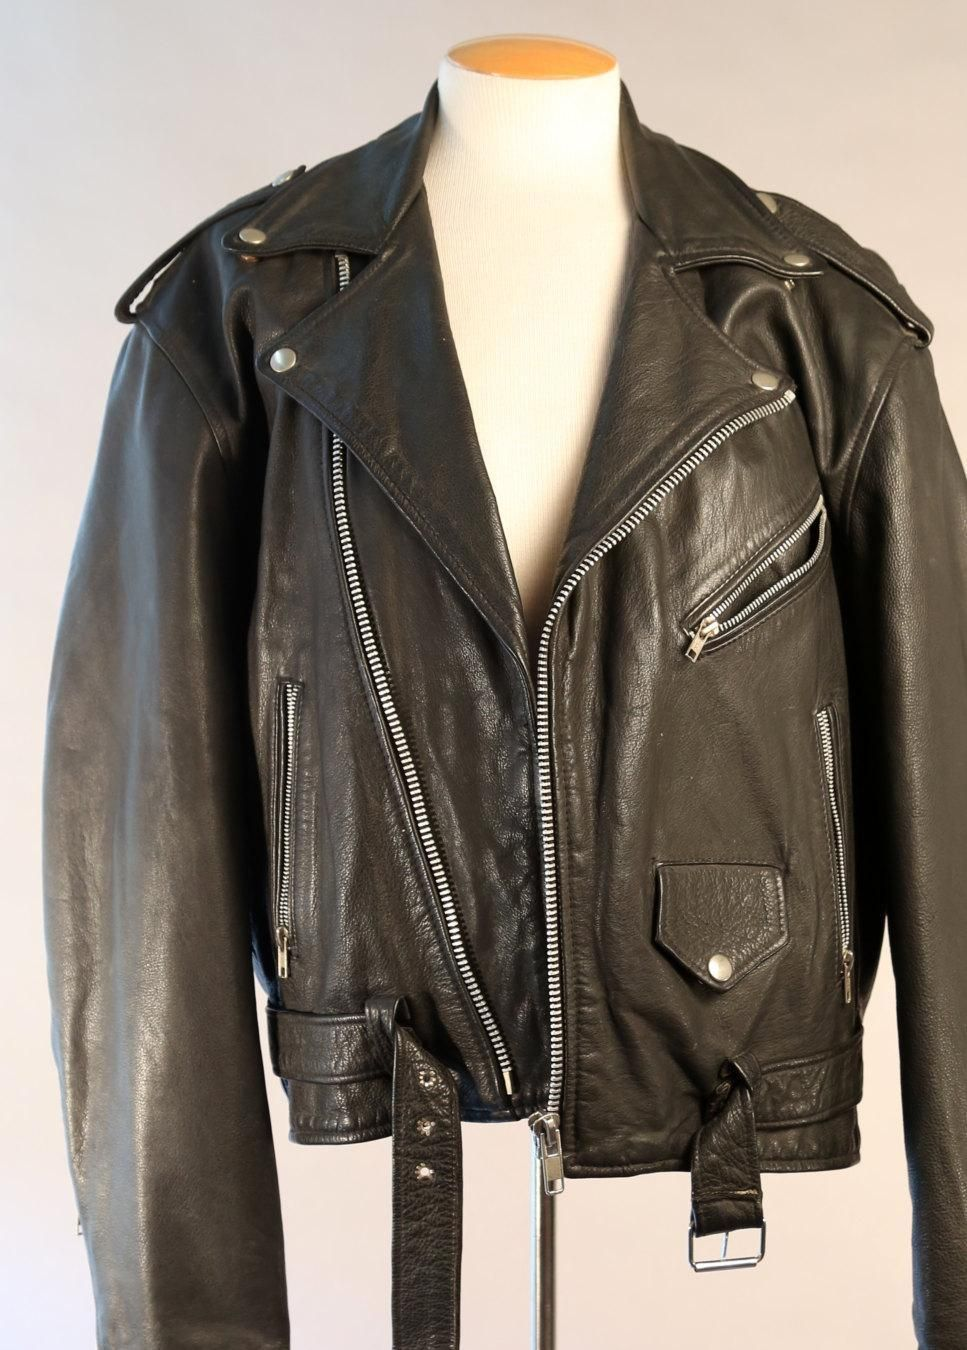 90s leather jacket size xl, members only black leather coat, 1990s mens leather jacket, mint condition, rocker grunge